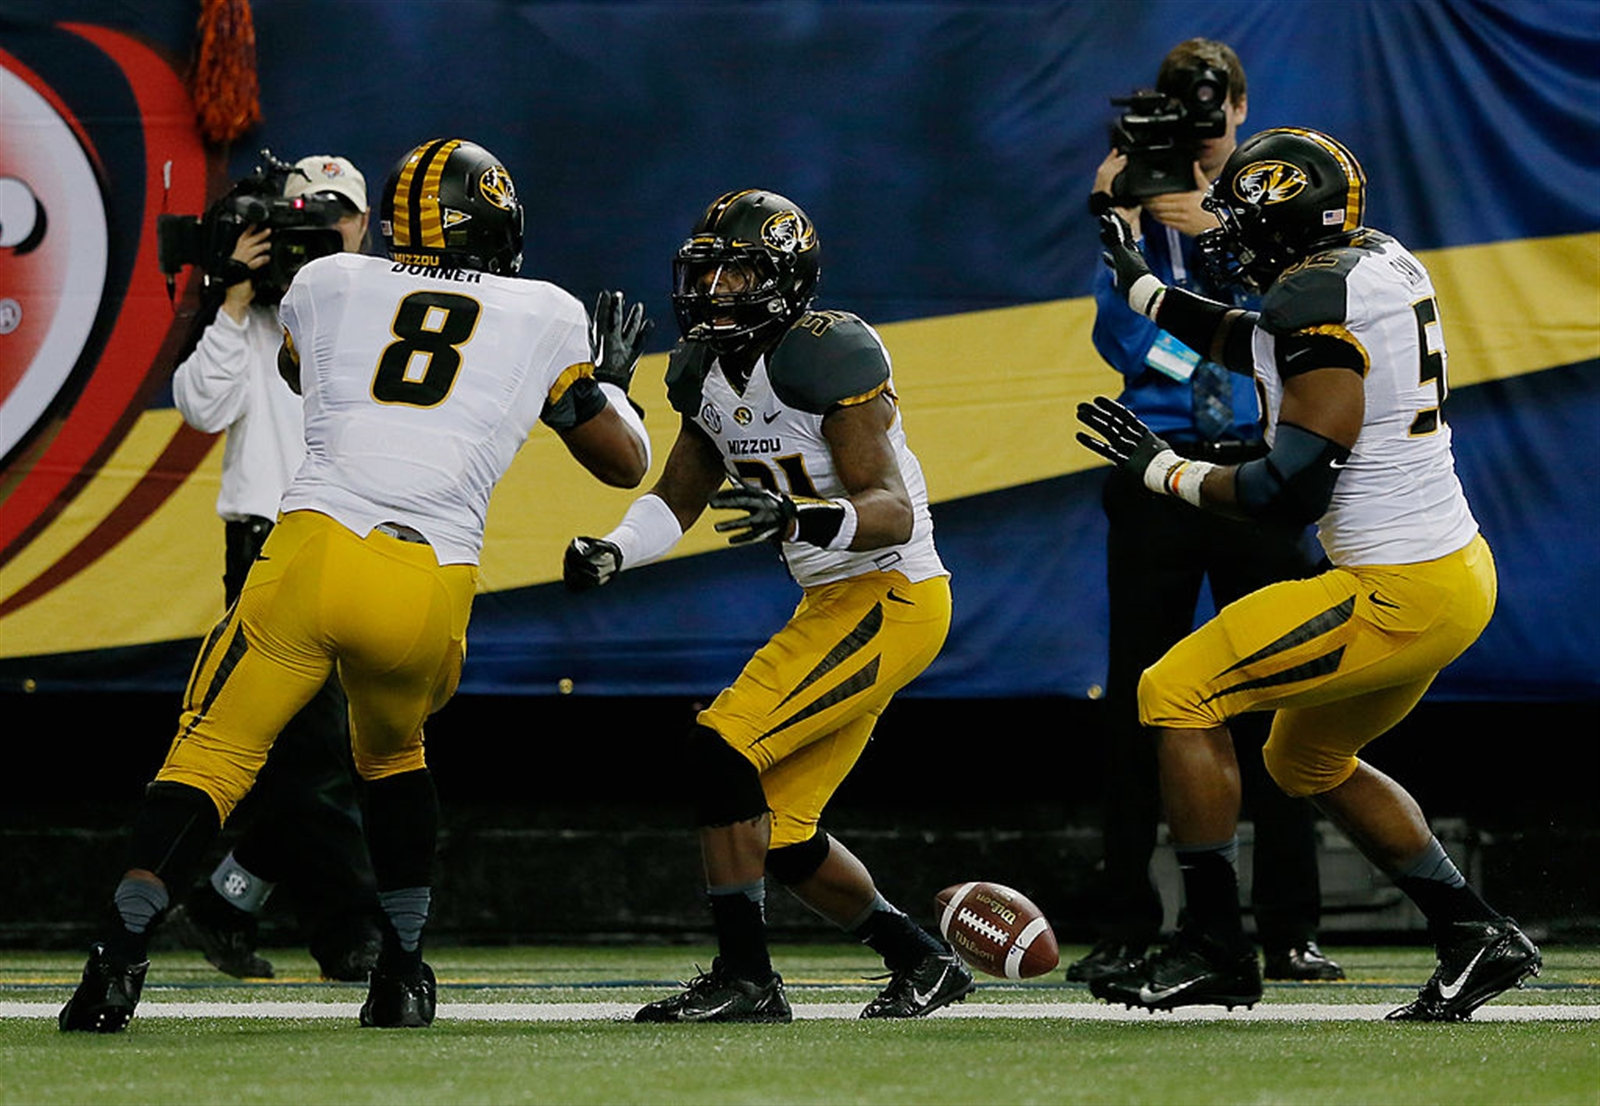 E.J. Gaines of the Missouri Tigers celebrates his second quarter touchdown with teammate Donovan Bonner (8) and Michael Sam (52) against the Auburn Tigers during the SEC Championship Game at Georgia Dome on December 7, 2013 in Atlanta, Georgia.